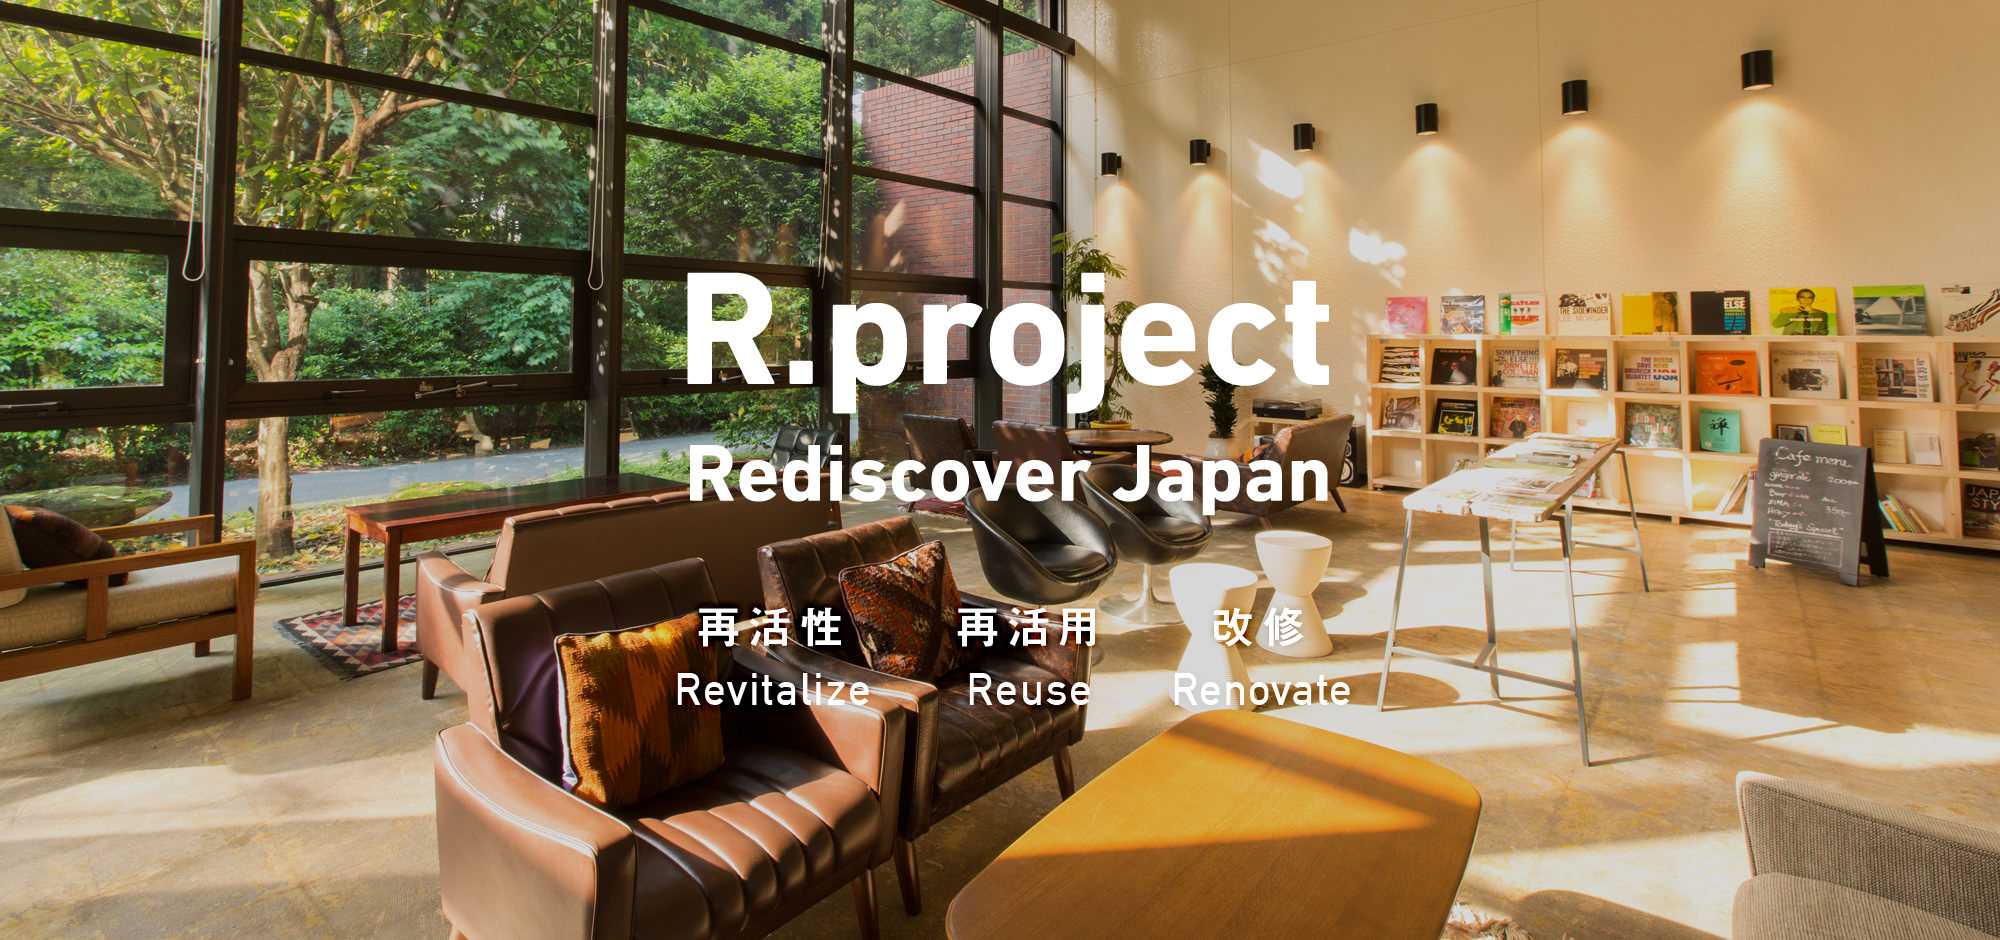 再活性、再活用、改修 Revitalize、Reuse、Renovate